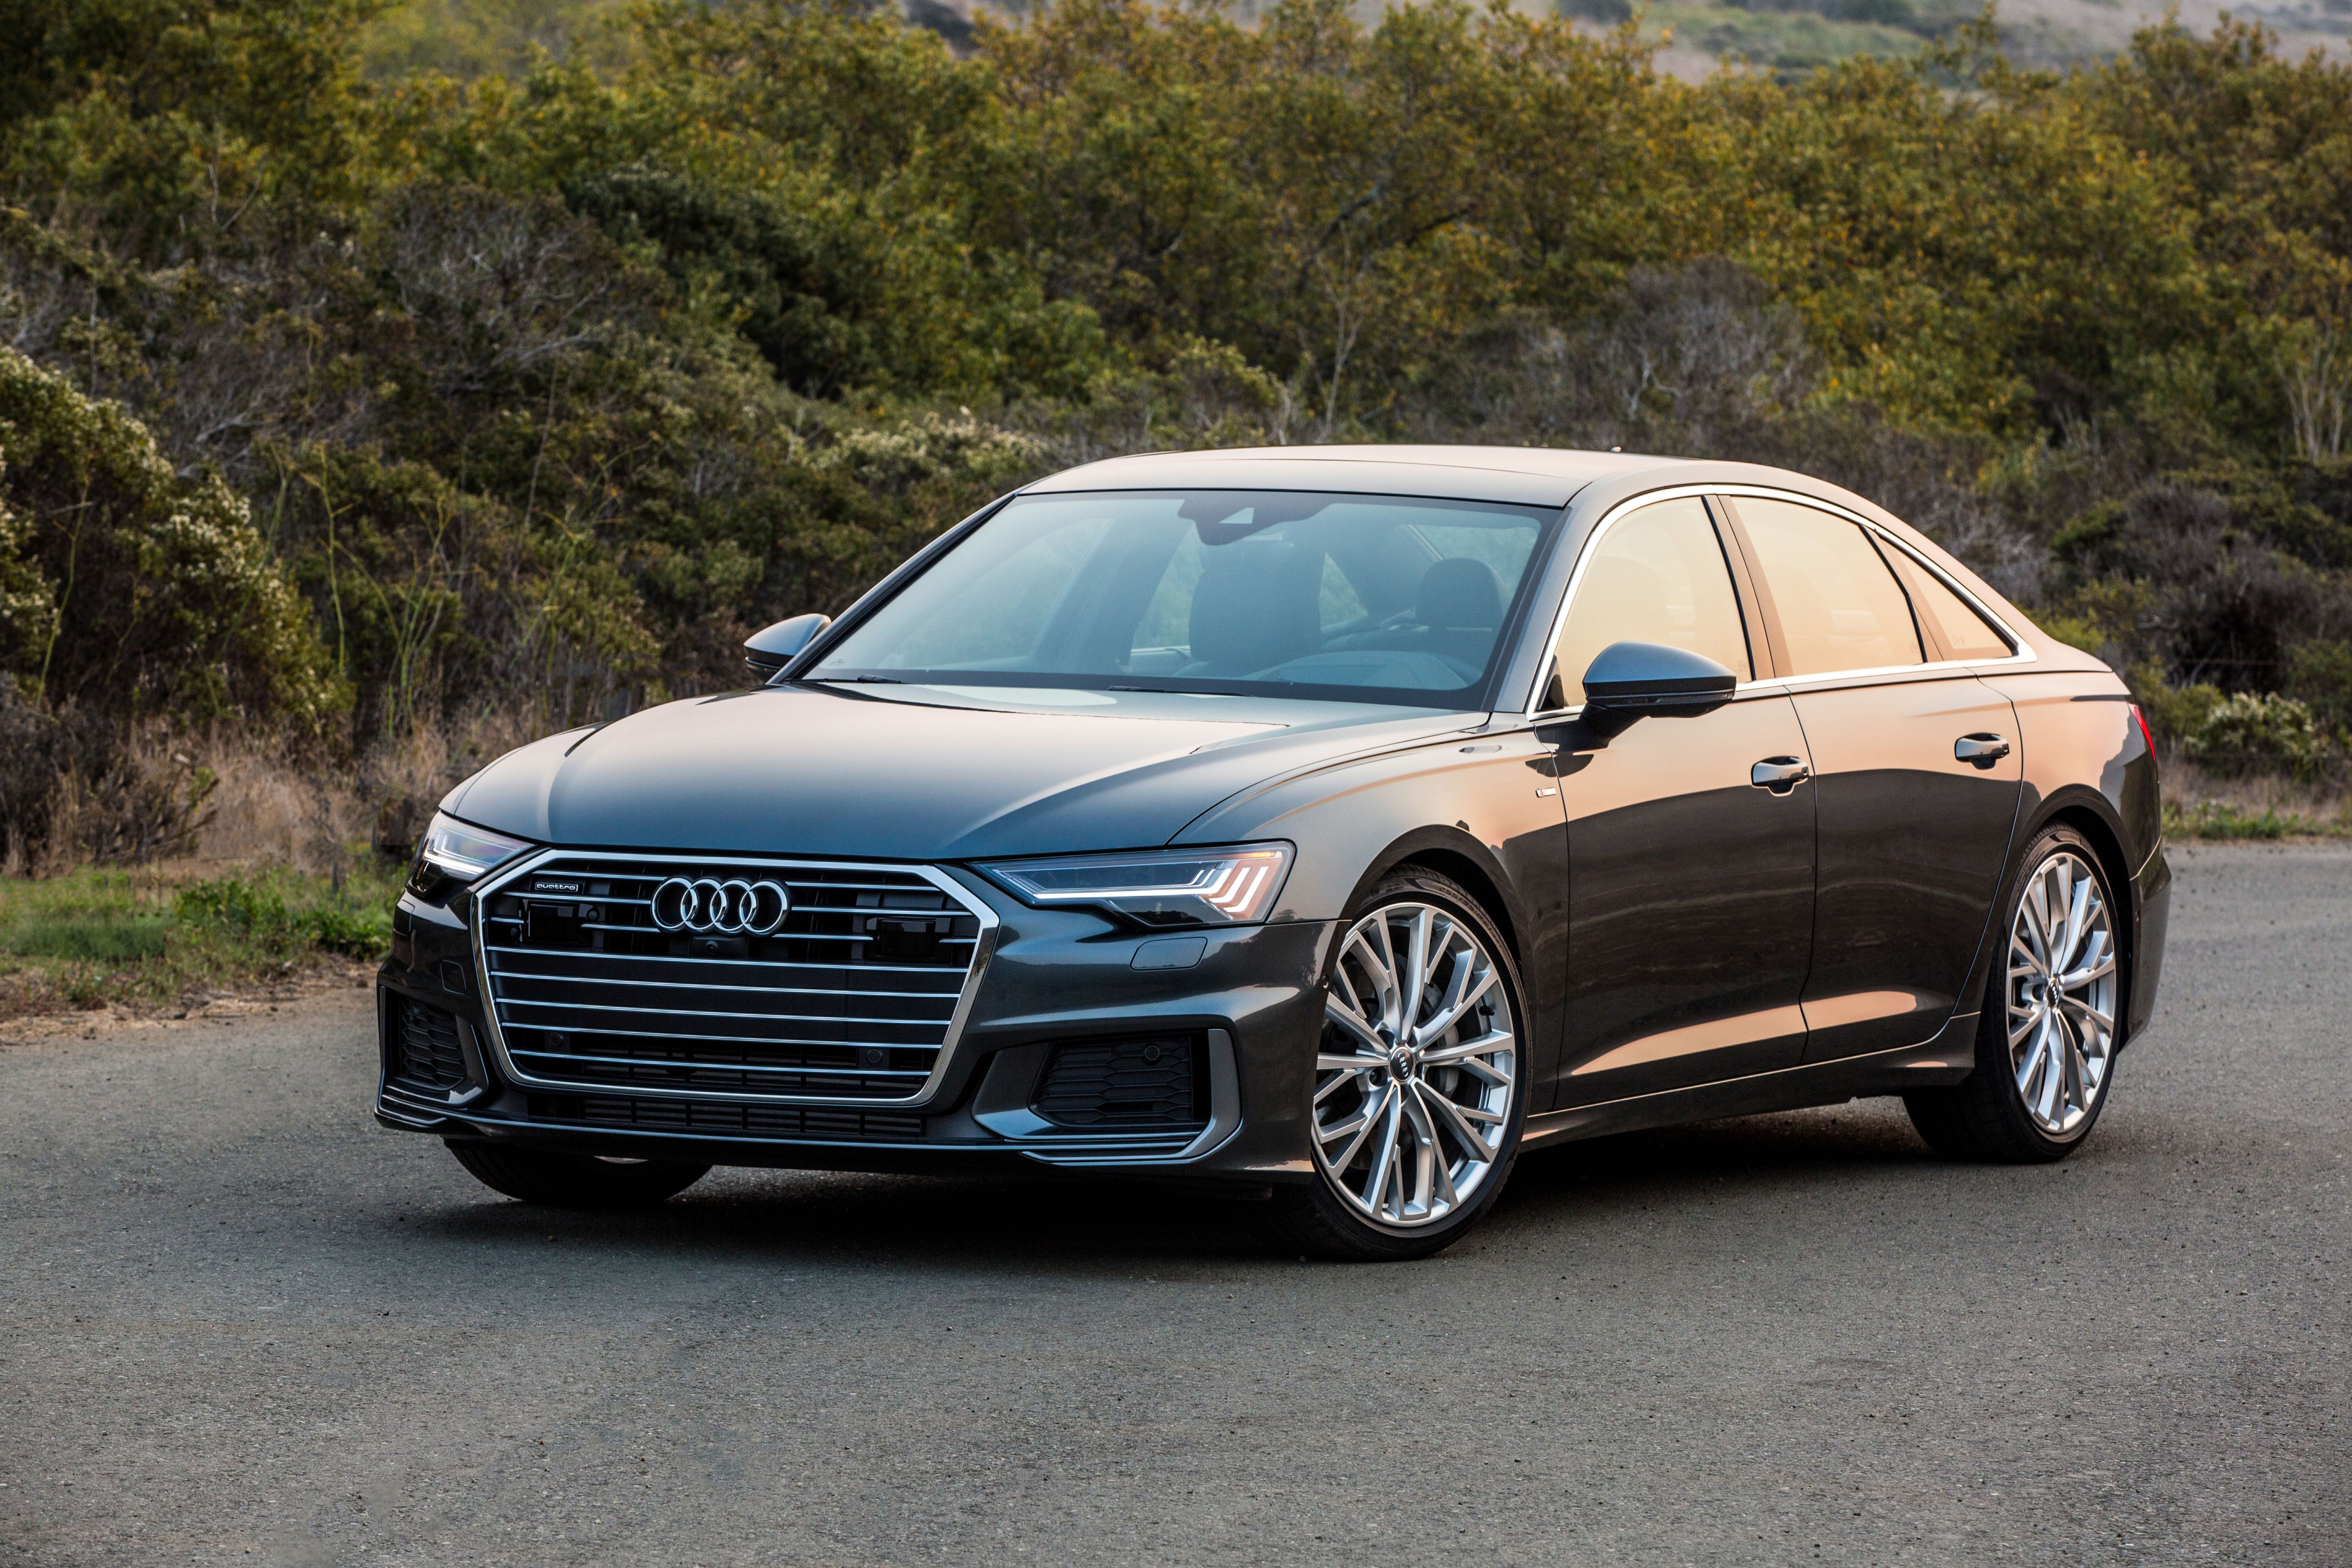 2020 Audi A6 Comes Research New